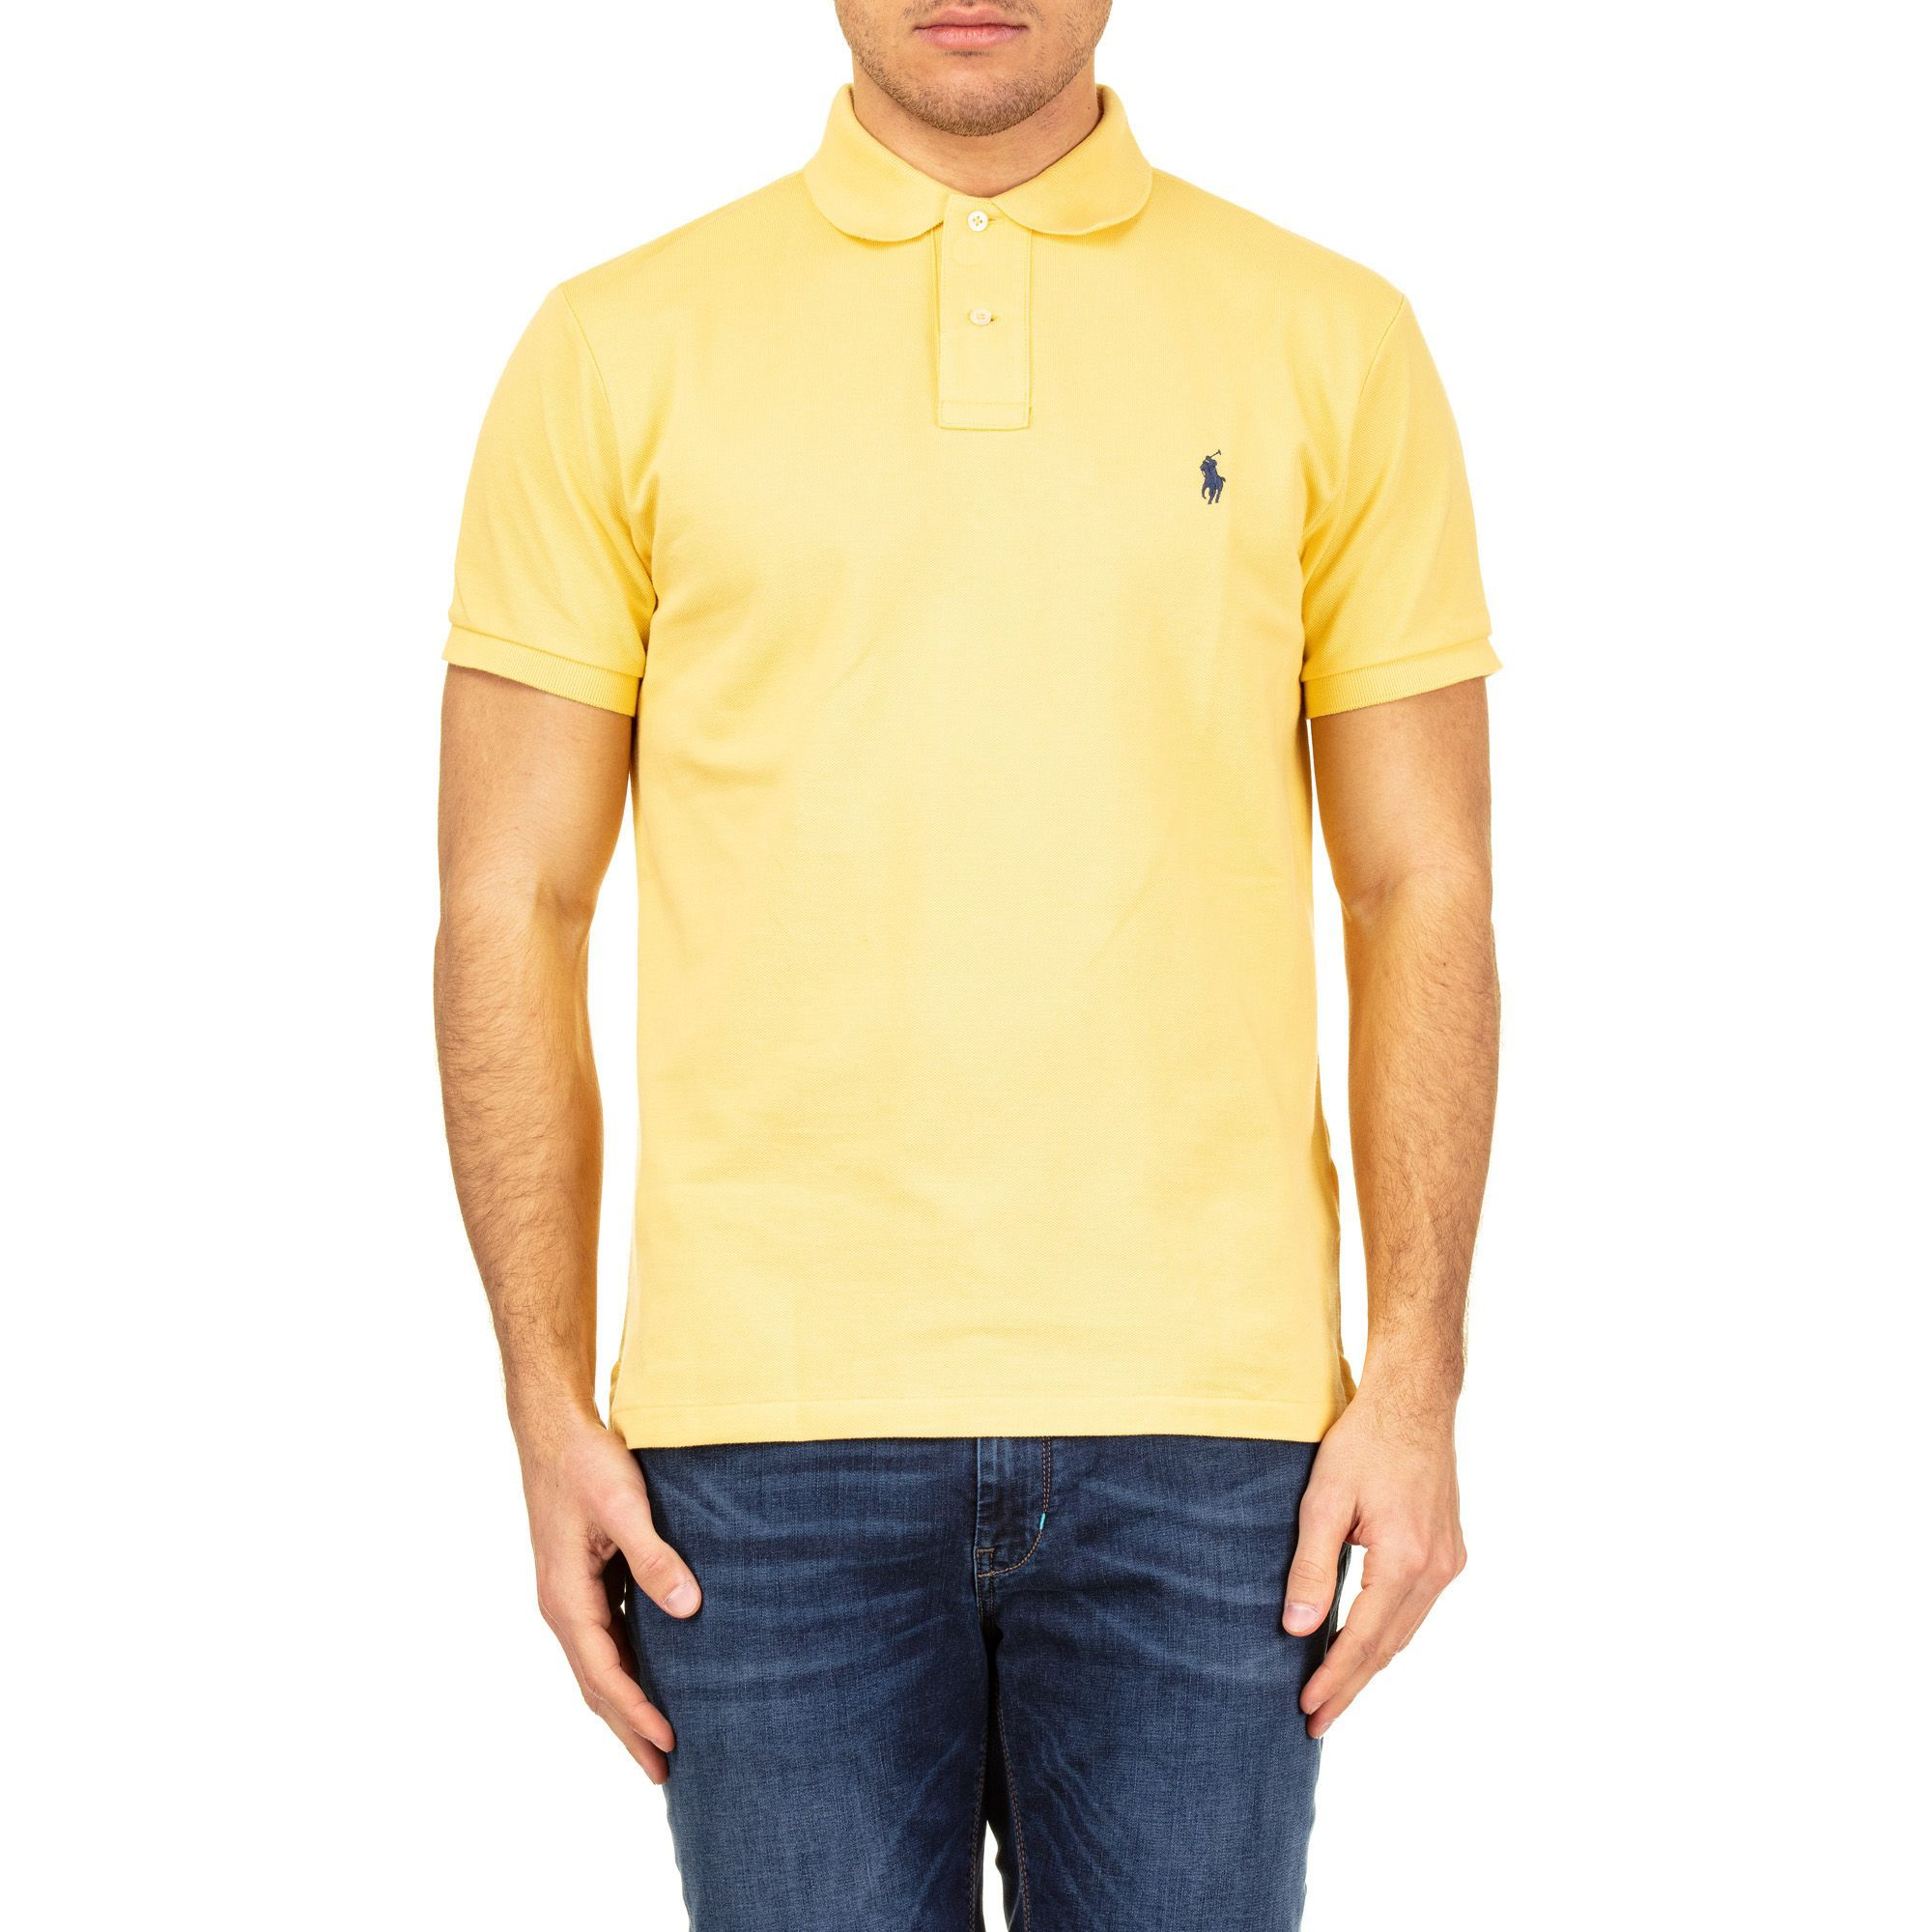 RALPH LAUREN MEN'S 710536856068 YELLOW COTTON POLO SHIRT